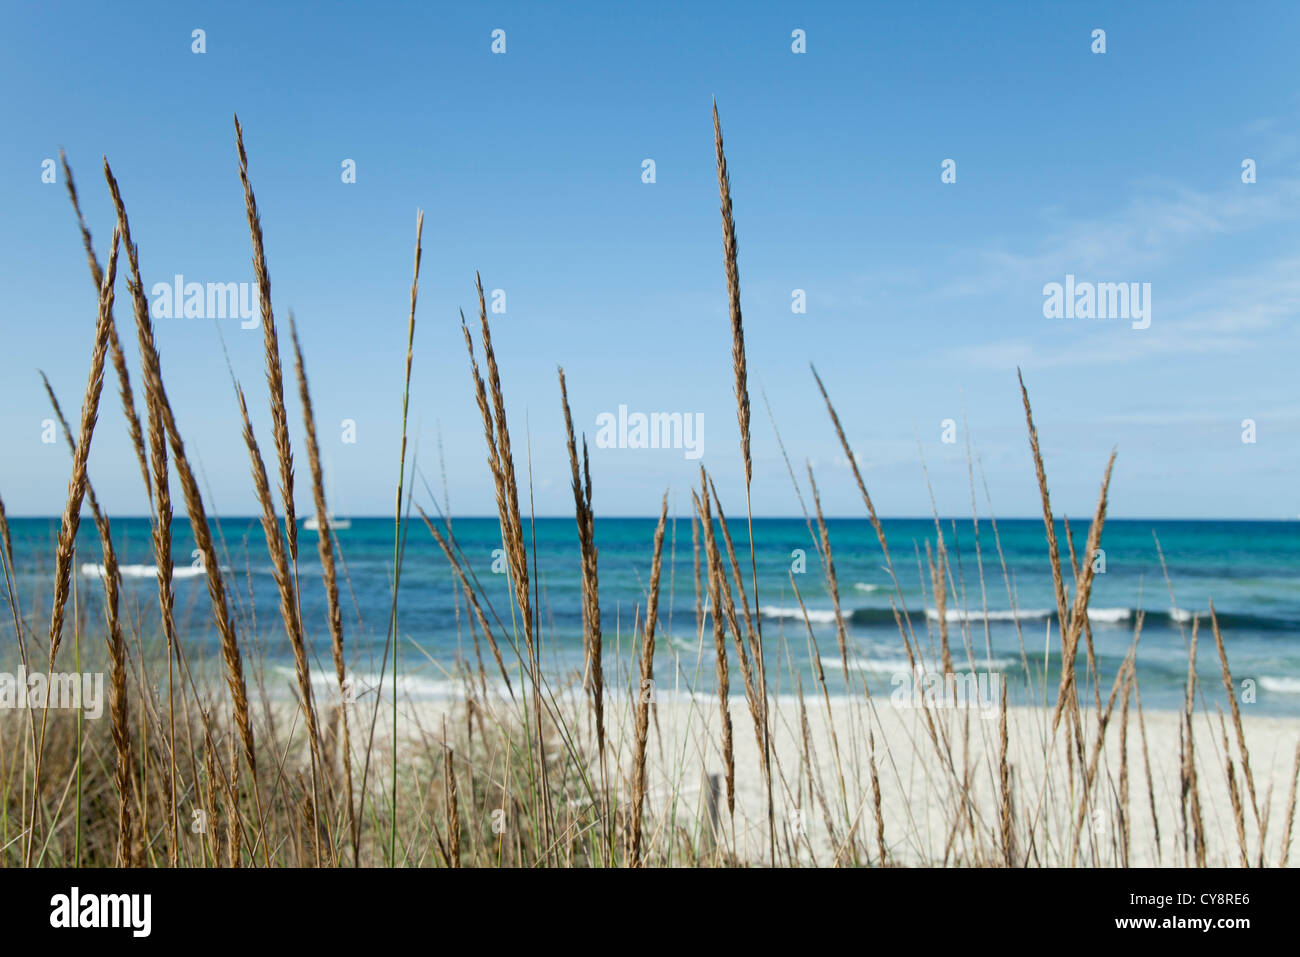 Tranquil beach scene with dune grass in foreground - Stock Image